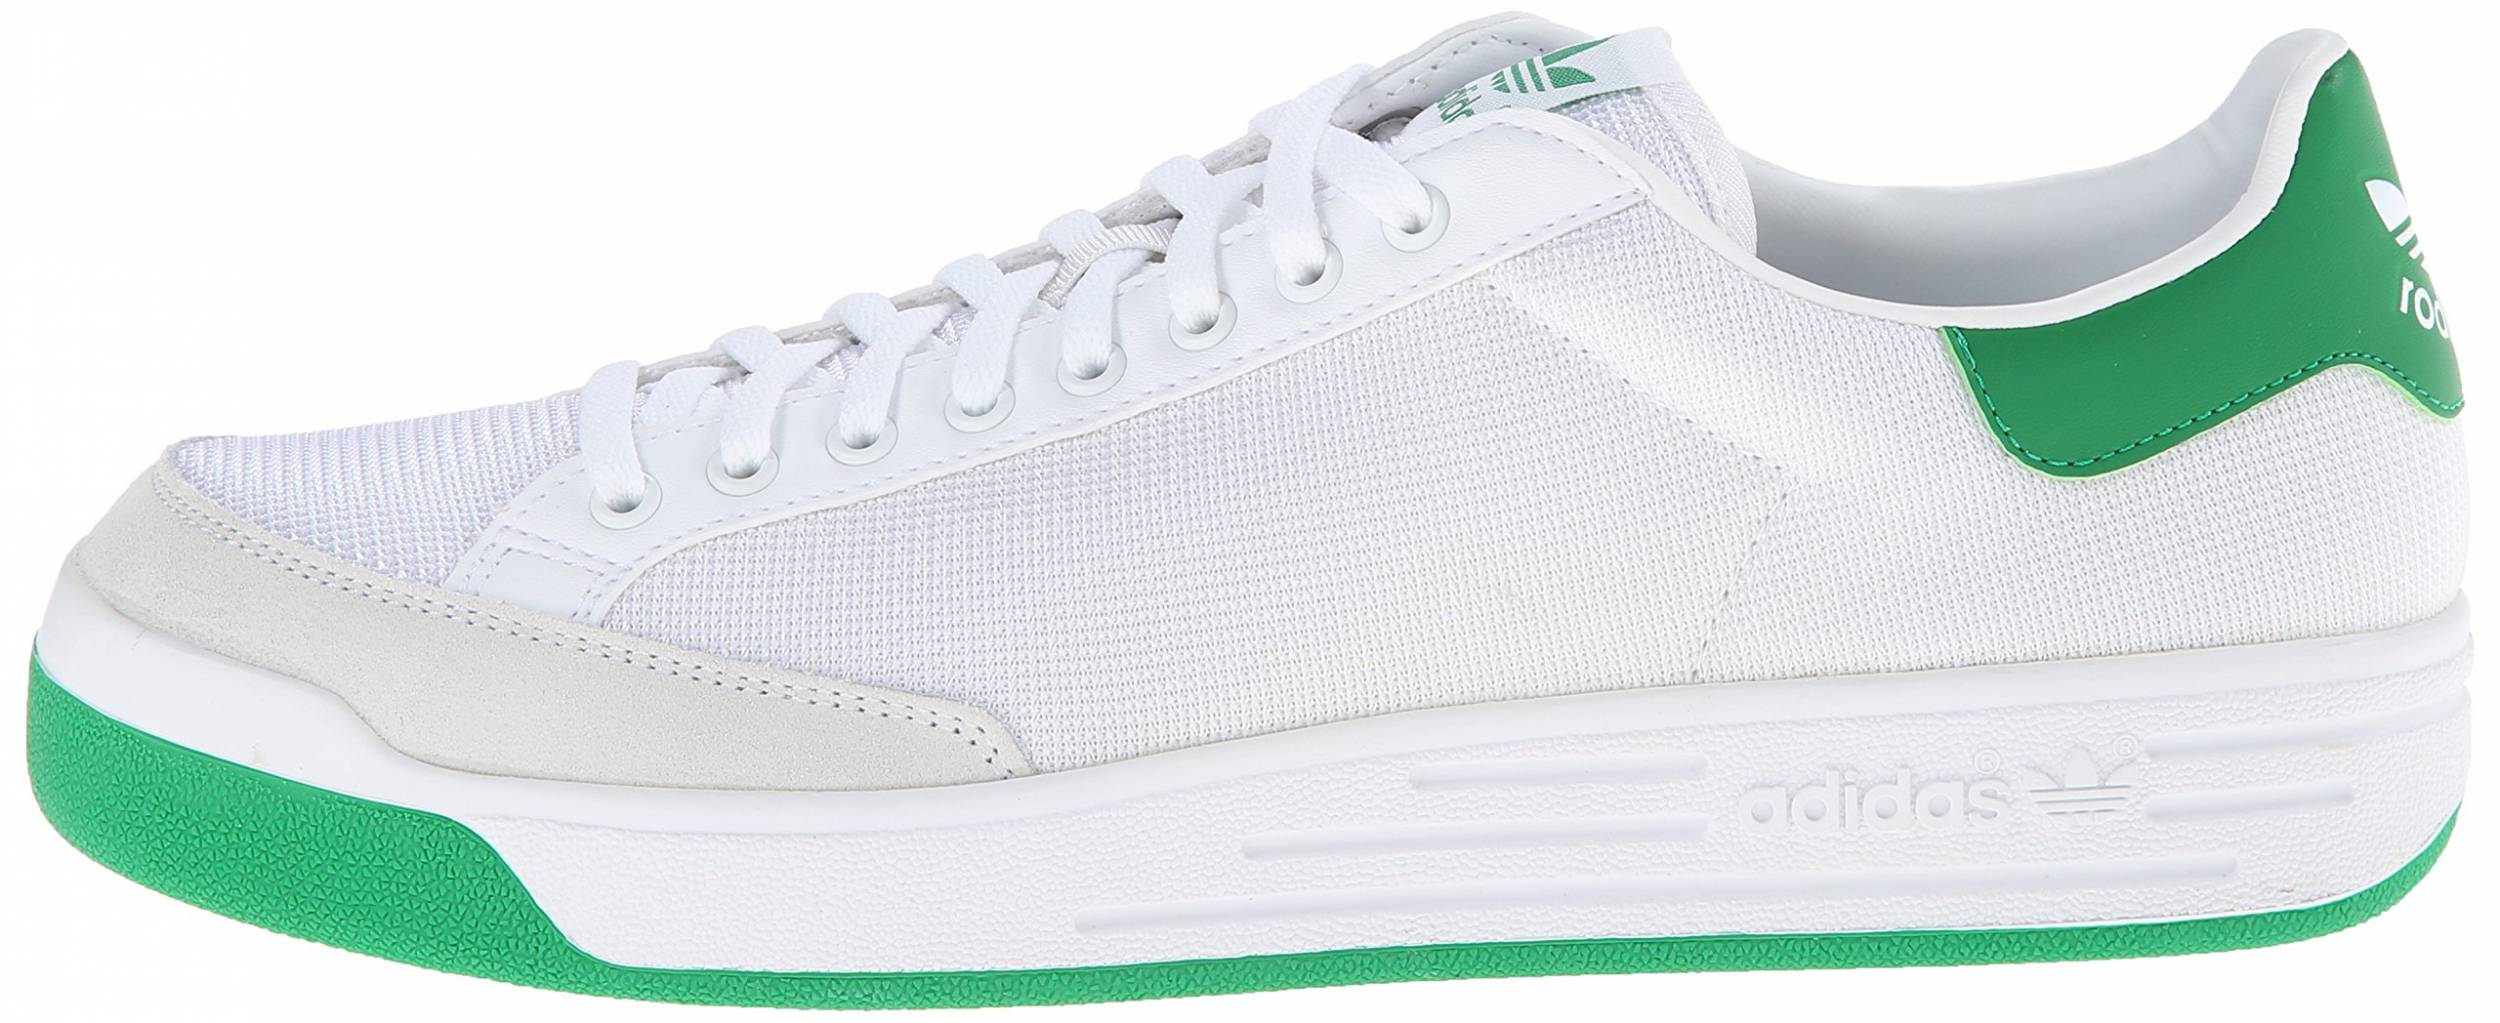 $259 + Review of Adidas Rod Laver